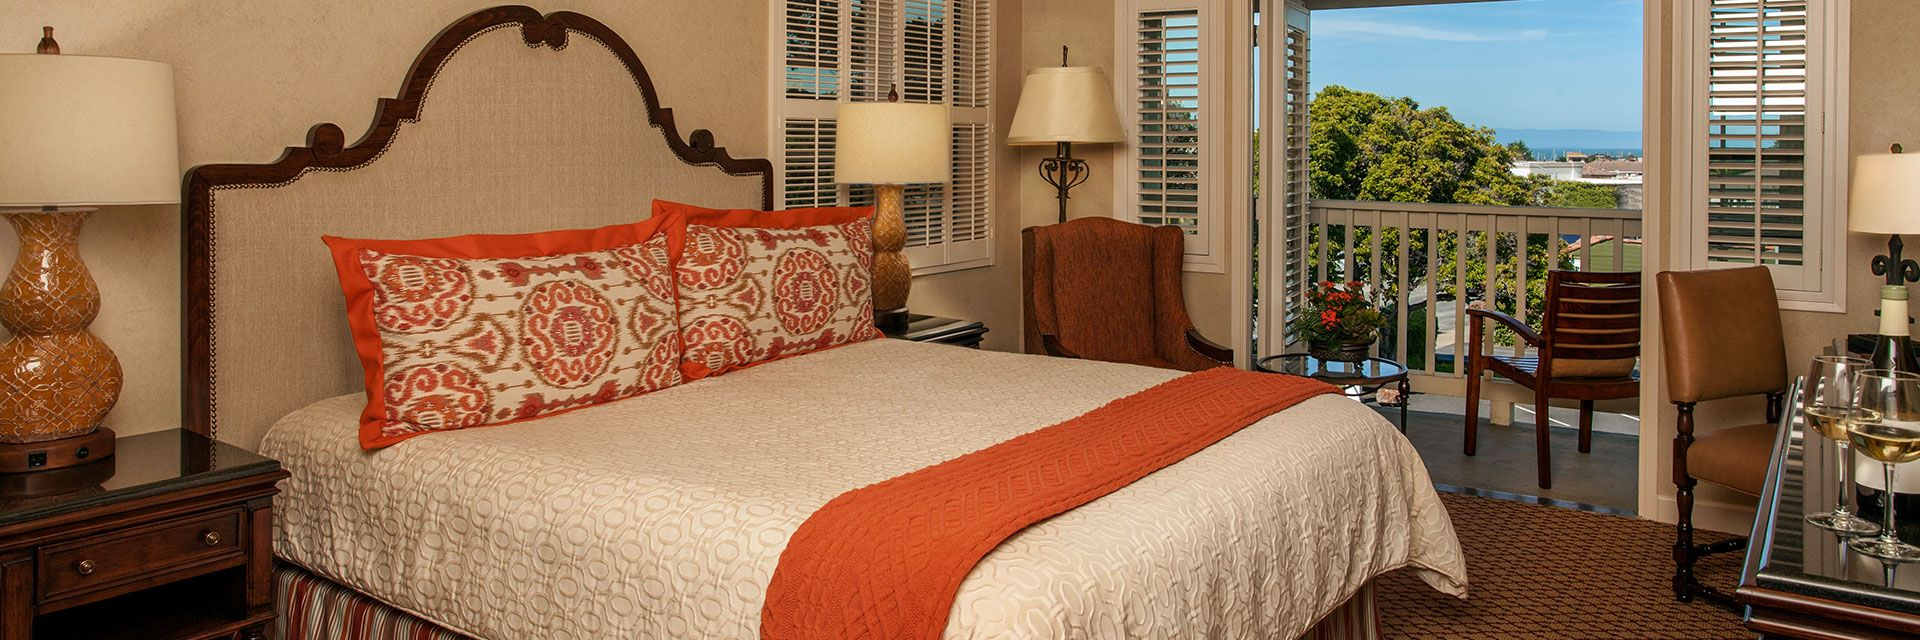 Rooms and suites at Casa Munras Garden Hotel & Spa, Monterey